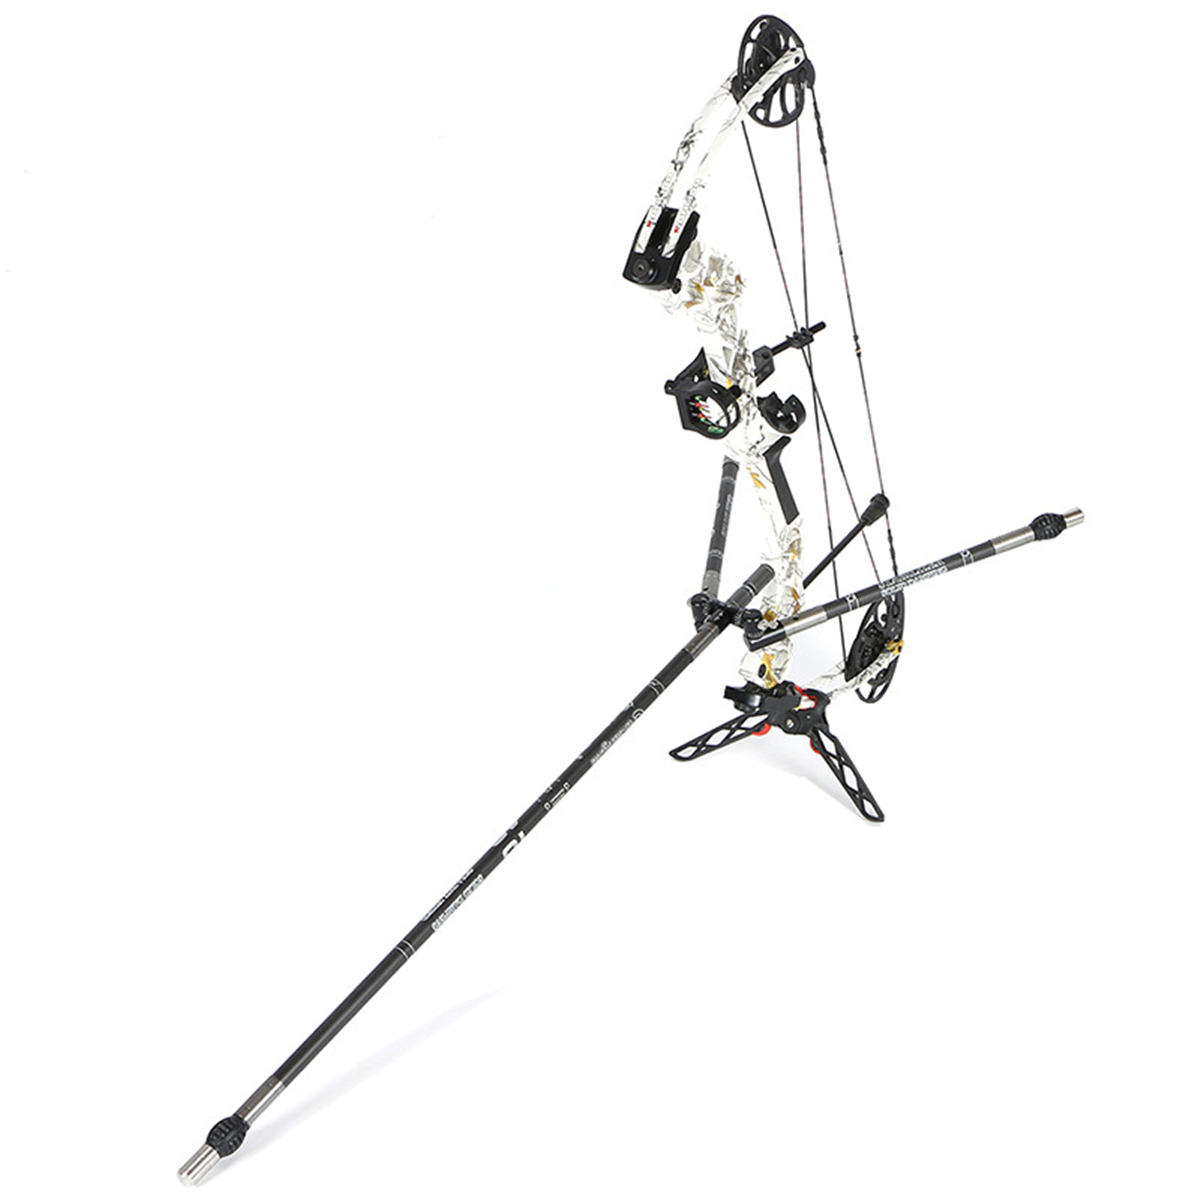 MILAEM 3-30 Inch Archery Bow Stabilizer Rod Balance Bar Extension Pole Bow Stabilizer for Recurve Compound Bow